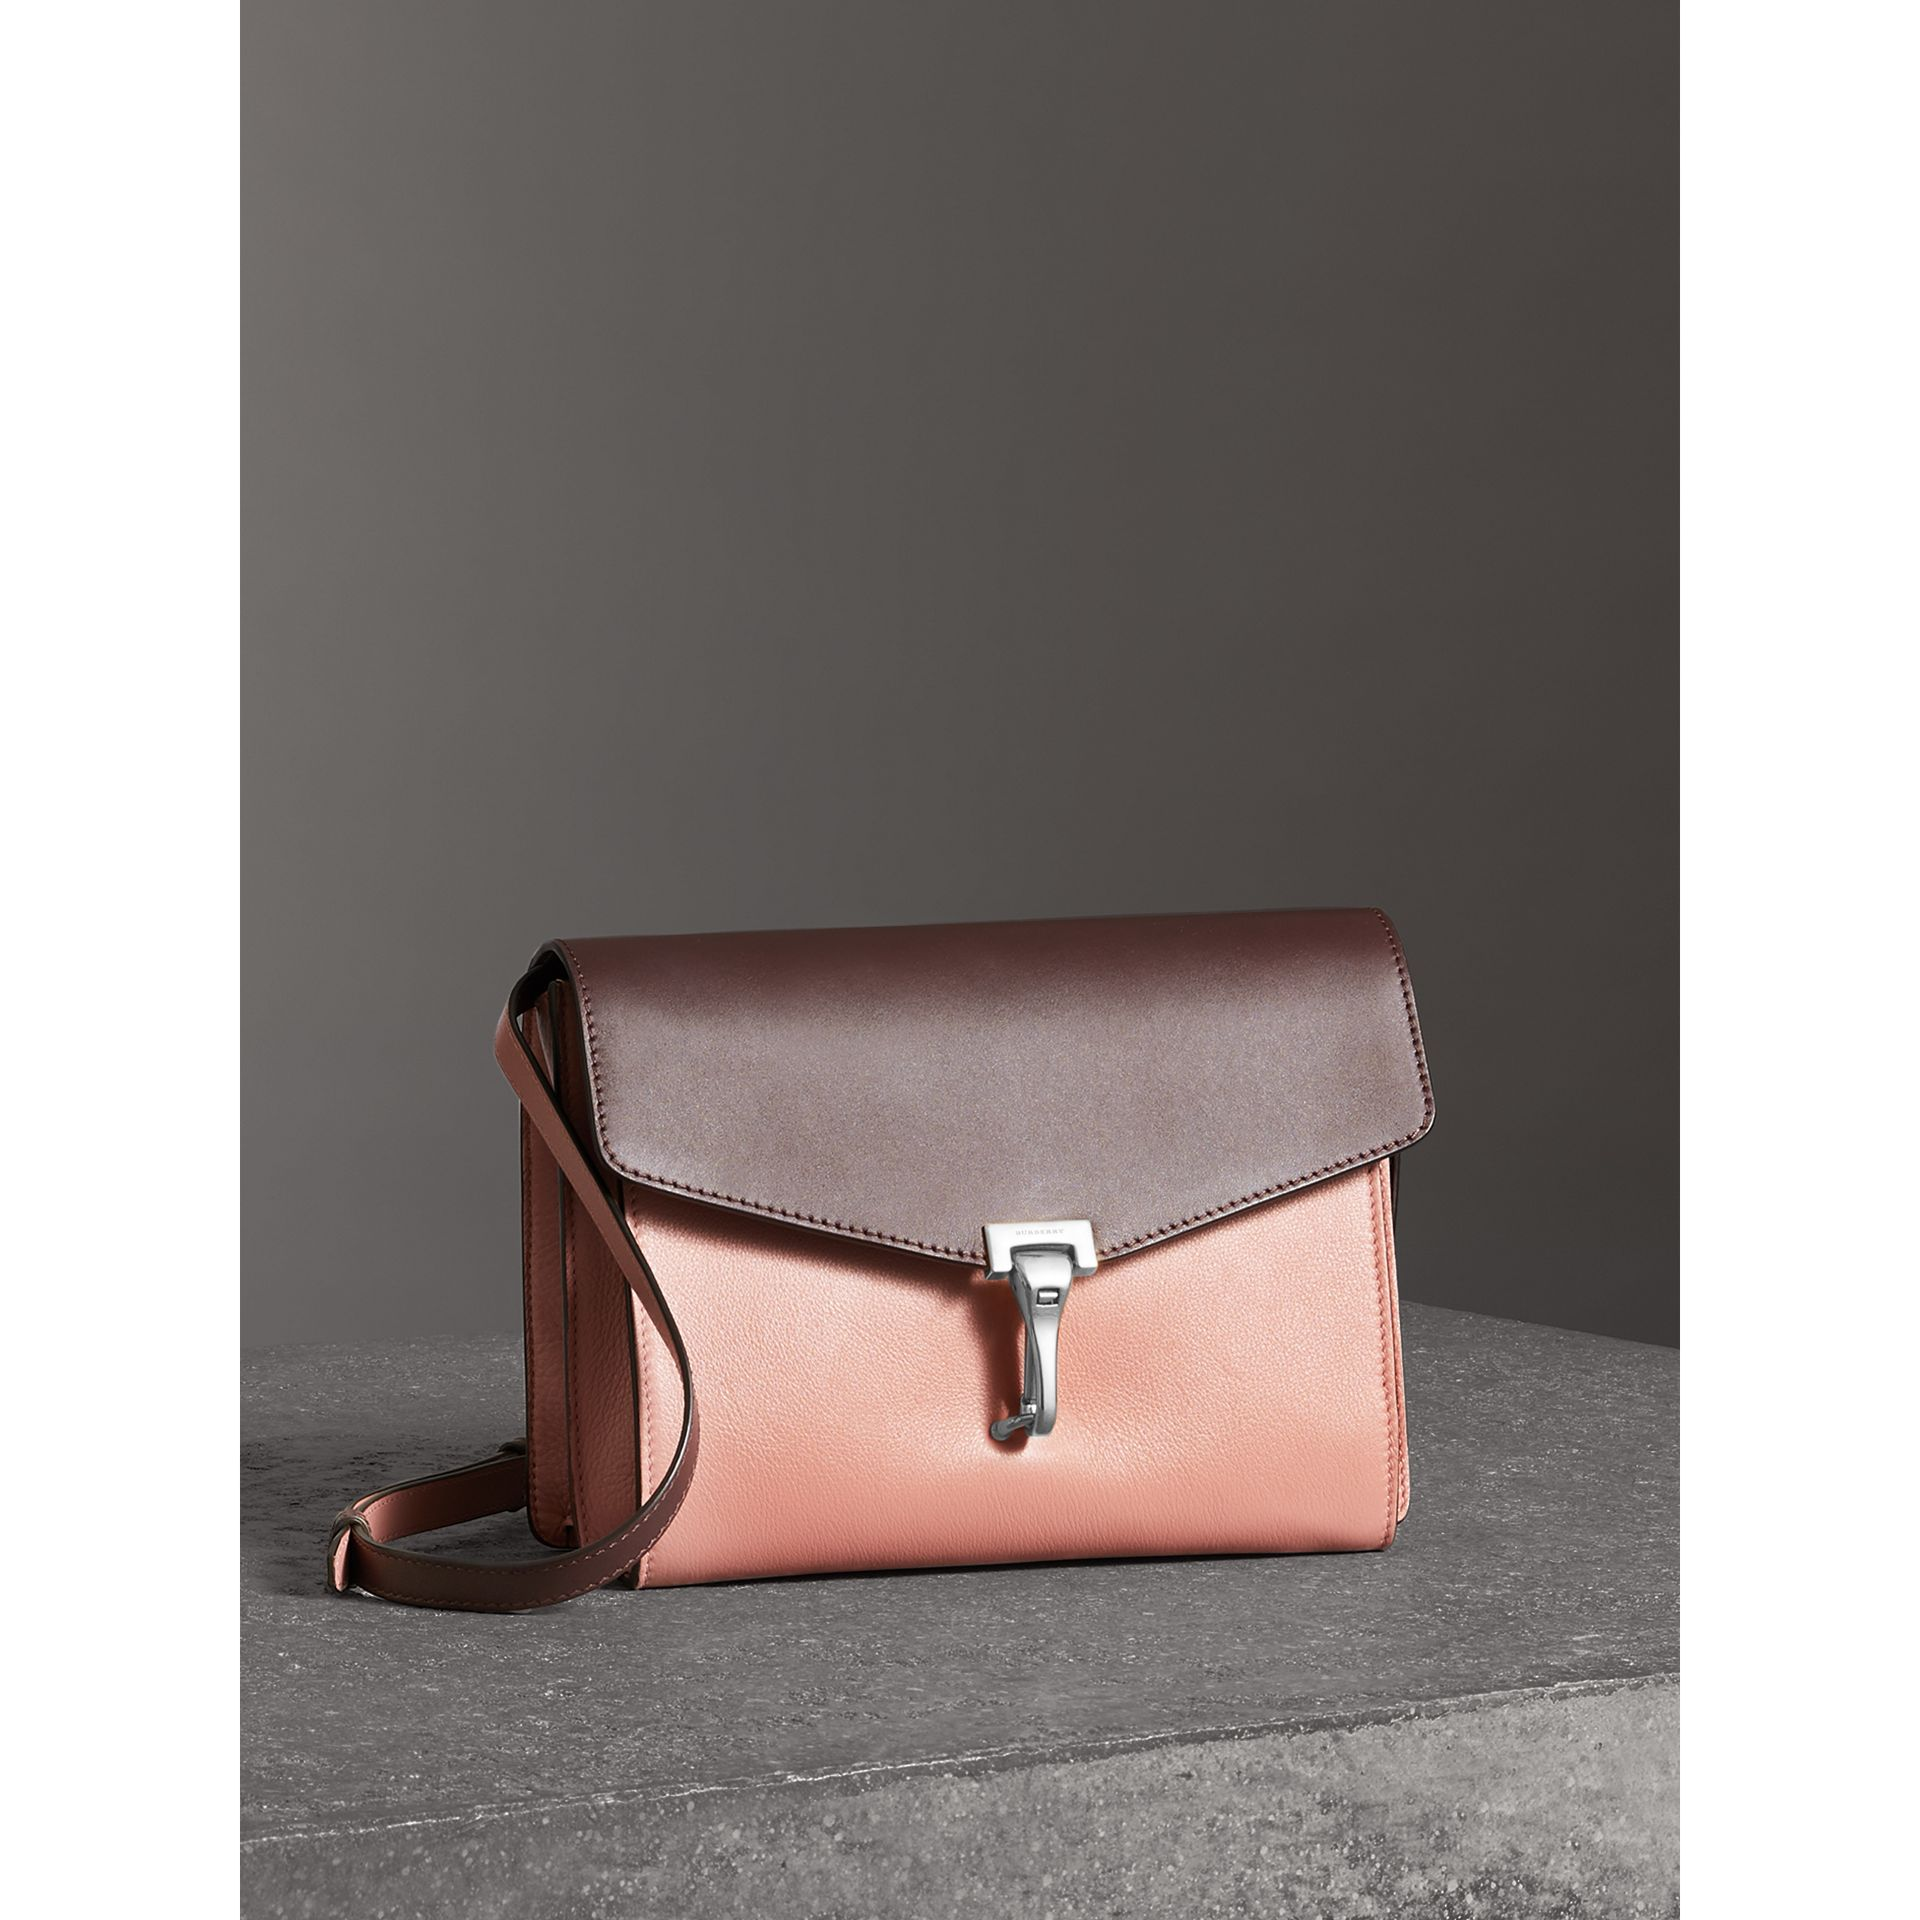 Two-tone Leather Crossbody Bag in Dusty Rose/deep Claret - Women | Burberry - gallery image 4